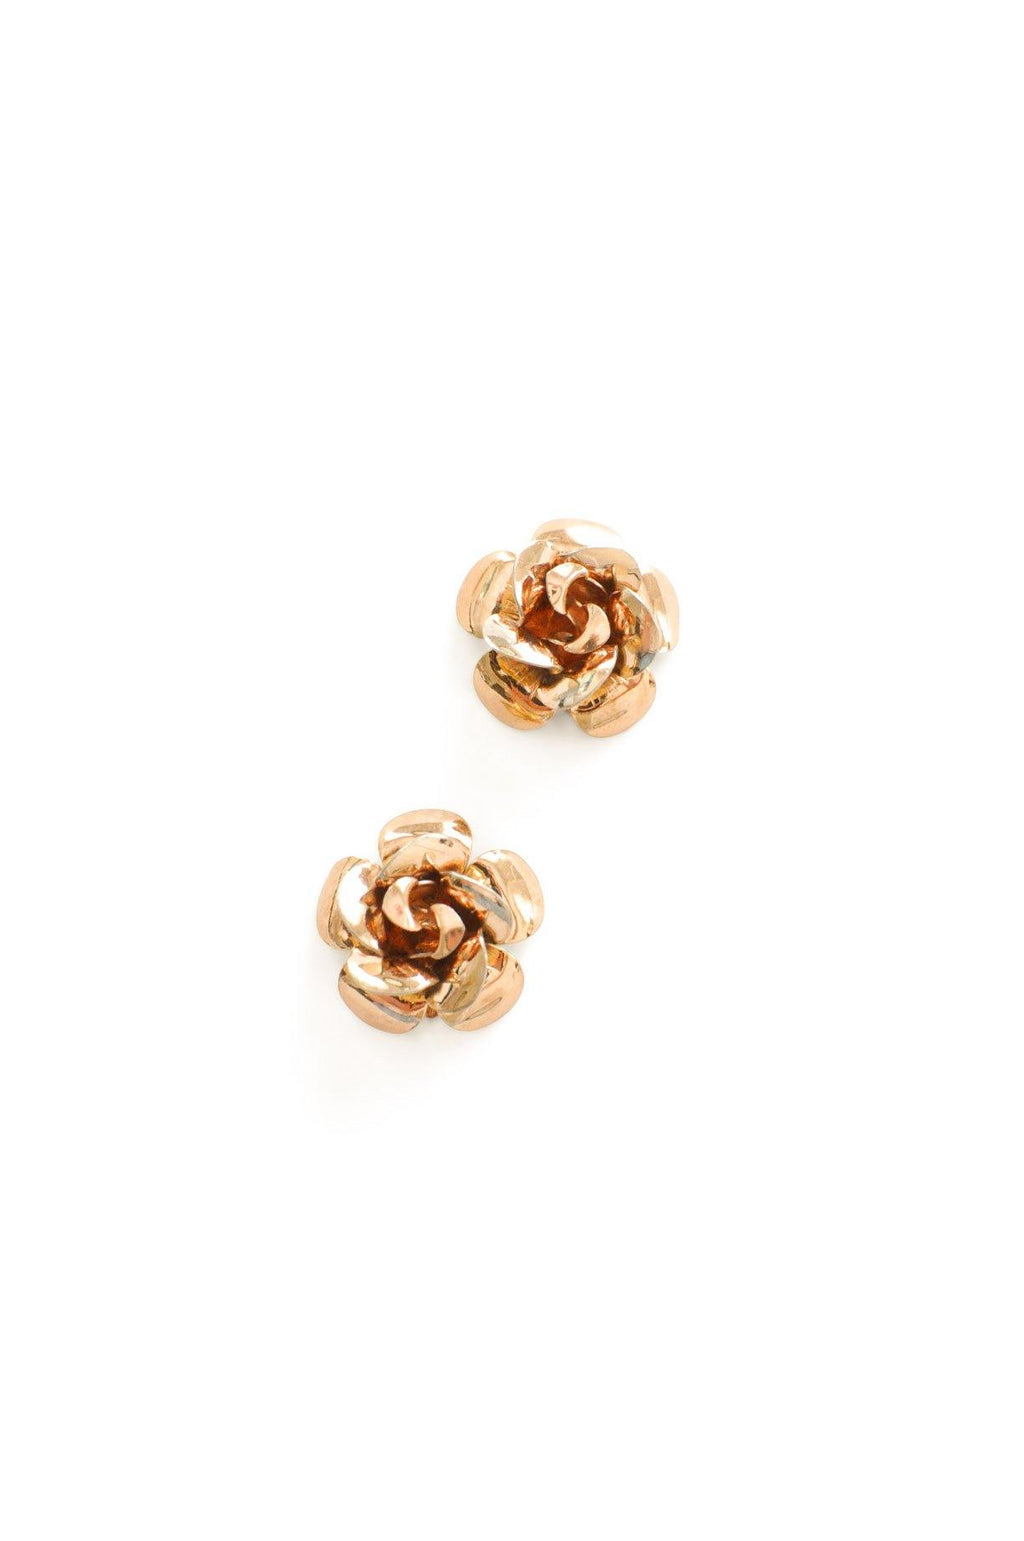 Rose Clip-on Earrings